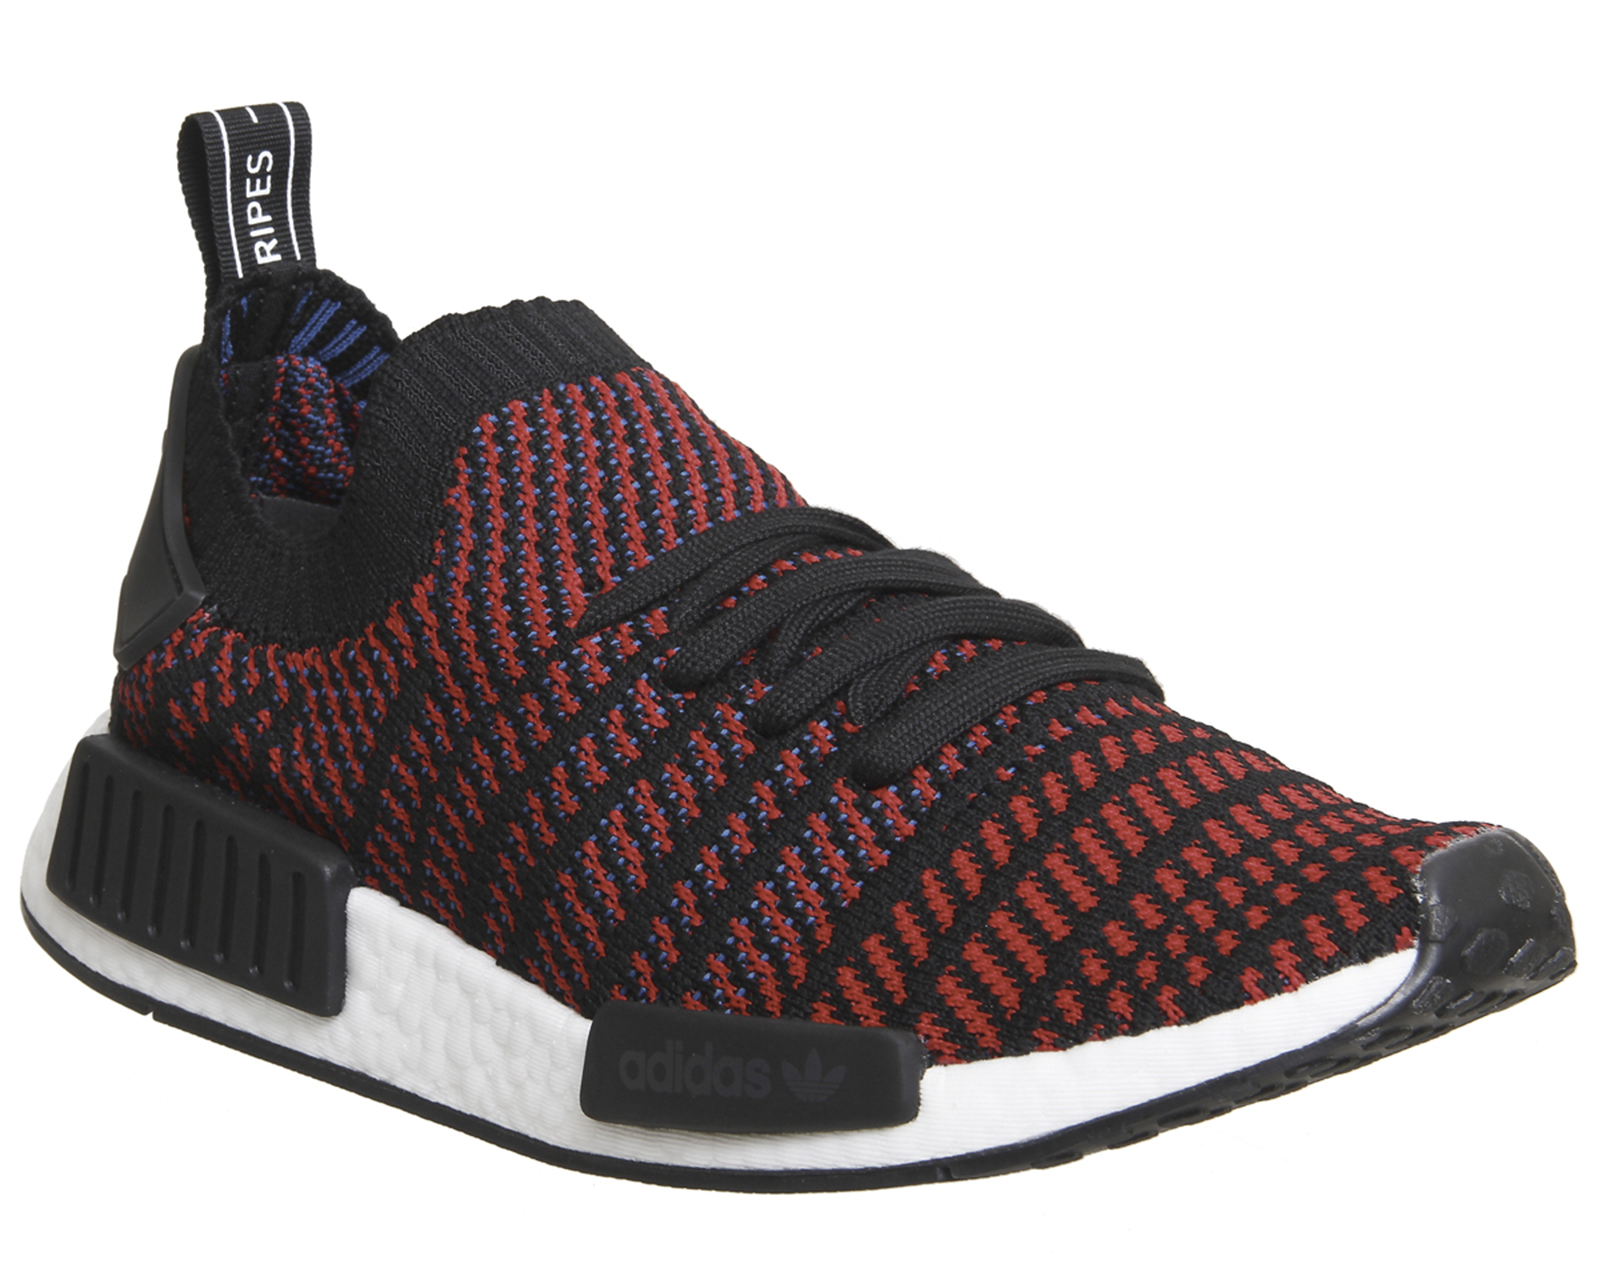 debaac2a1 Sentinel Adidas Nmd R1 Prime Knit Core Black Red Trainers Shoes